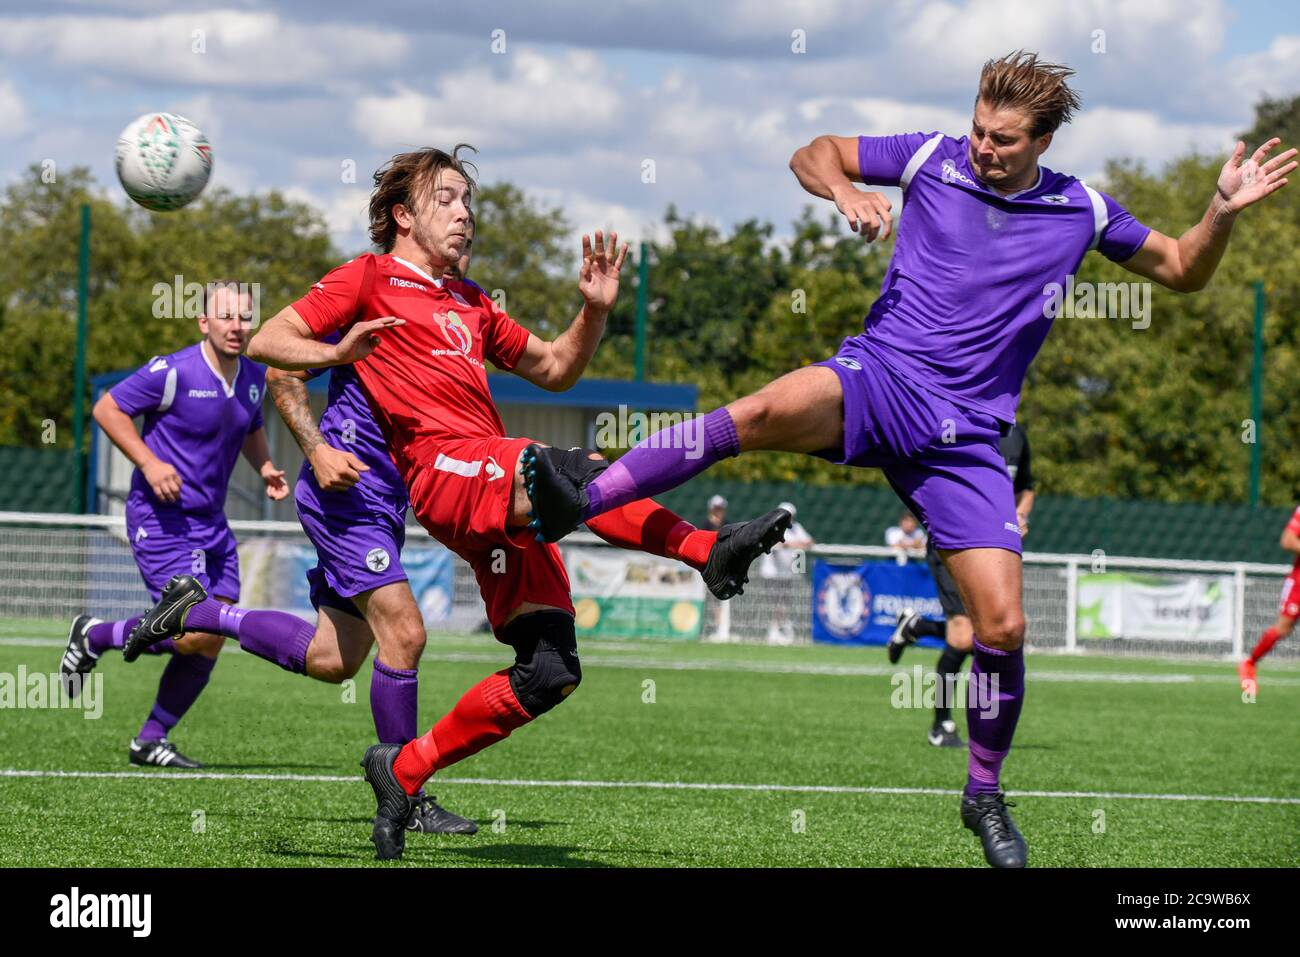 parkside-football-ground-aveley-essex-uk-2nd-aug-2020-with-the-clearance-given-for-team-sports-to-recommence-after-the-covid-19-coronavirus-lockdown-the-teams-in-the-uk-are-beginning-friendly-matches-in-front-of-small-crowds-in-preparation-for-competitive-matches-in-september-the-alex-rungay-memorial-cup-took-place-at-aveleys-ground-and-saw-four-sunday-league-teams-compete-for-the-trophy-in-memory-of-alex-who-passed-away-when-manager-of-fc-utd-of-hornchurch-one-of-the-teams-competing-red-team-v-acd-utd-in-purple-with-money-going-to-mind-charity-2C9WB6X.jpg